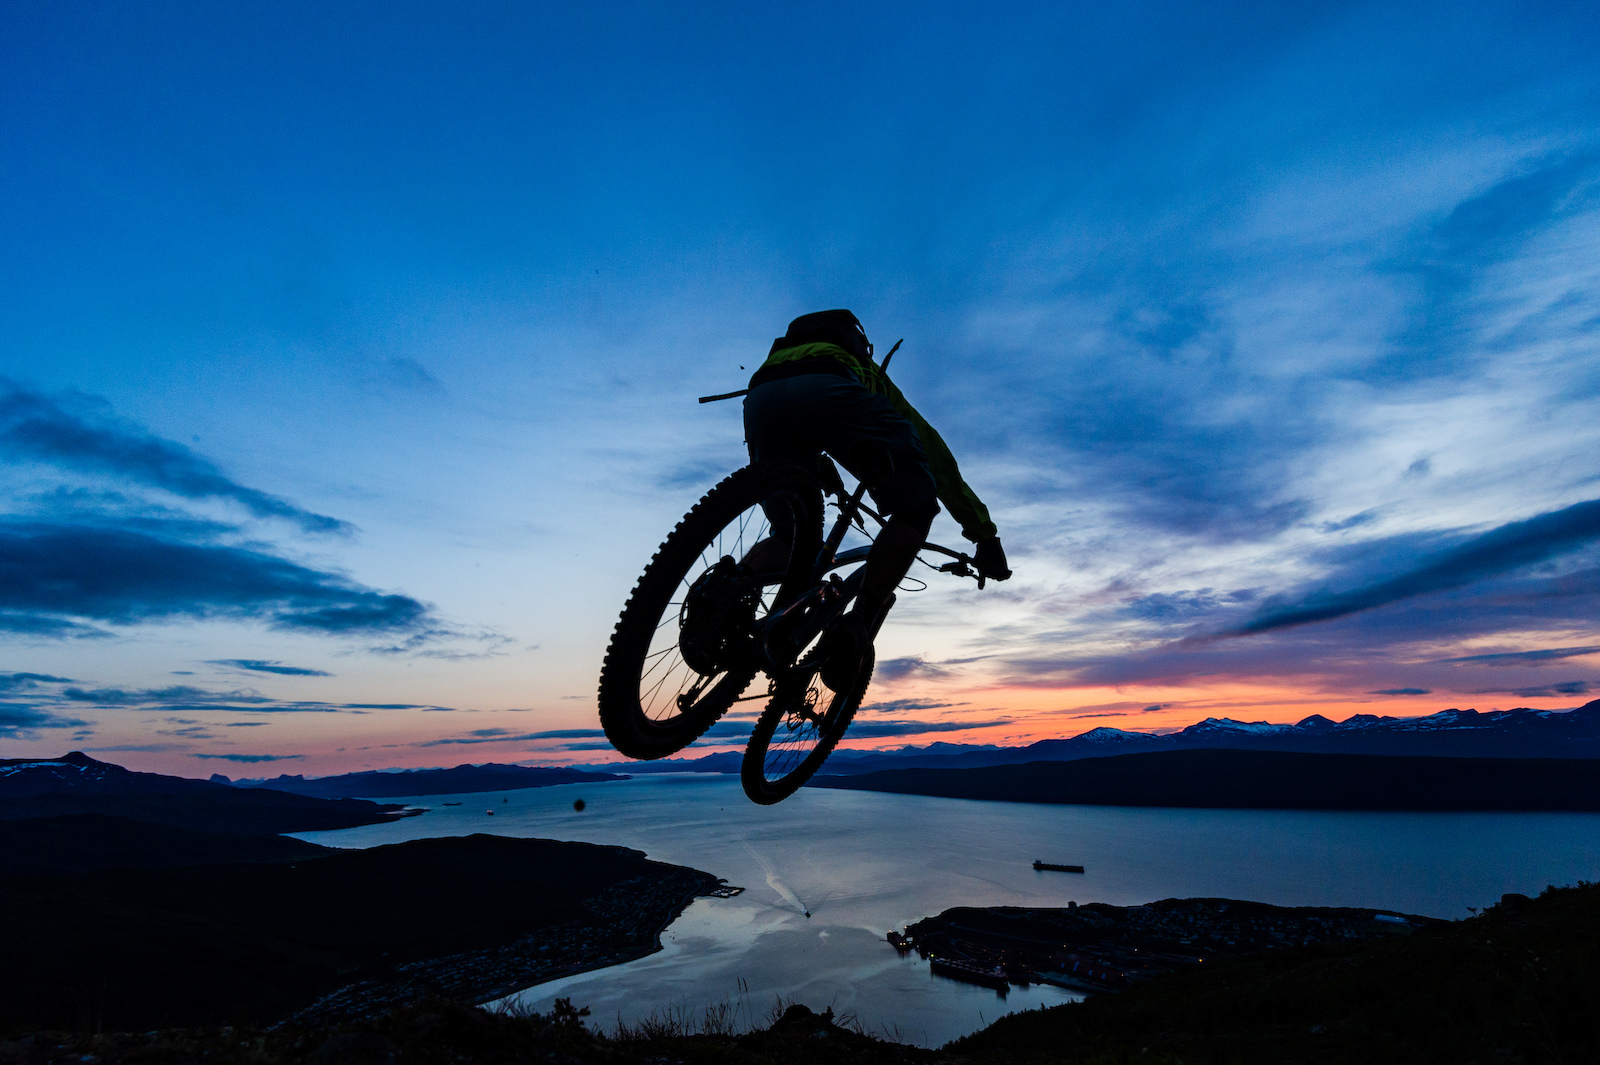 Joey Schulser riding in Narvik Norway.